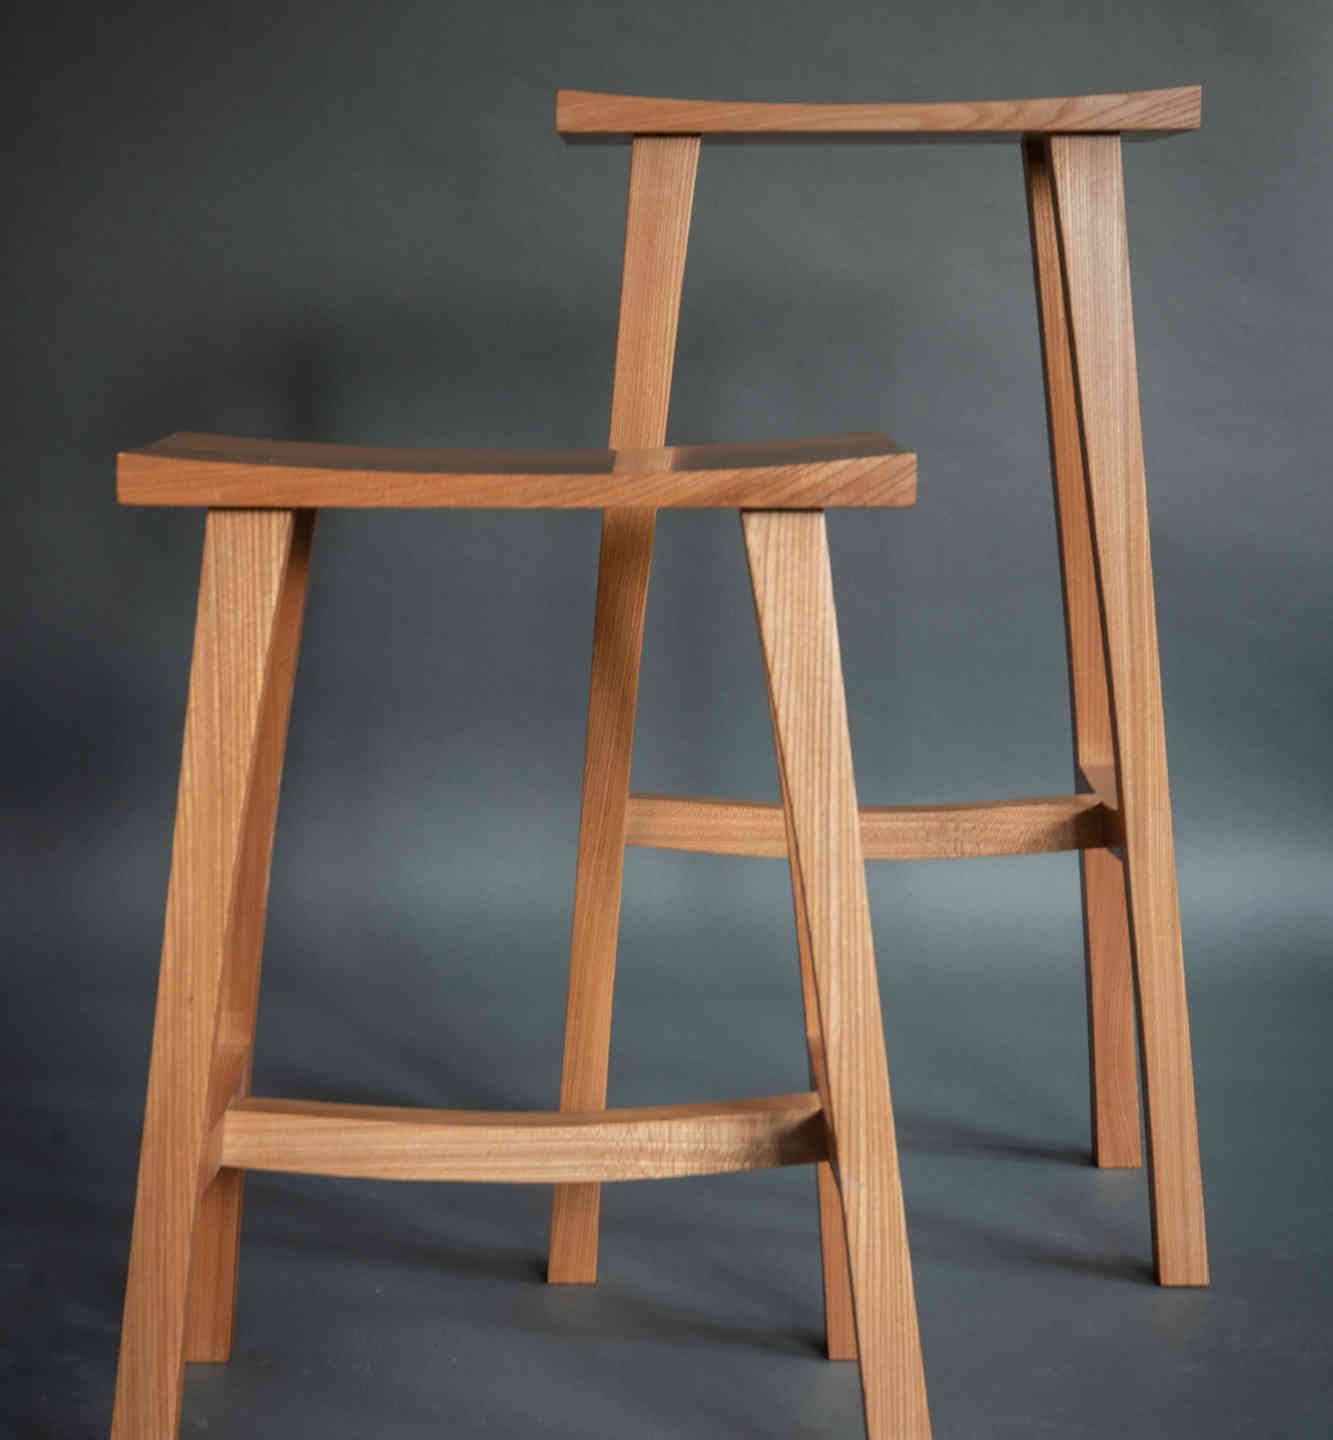 English elm stools